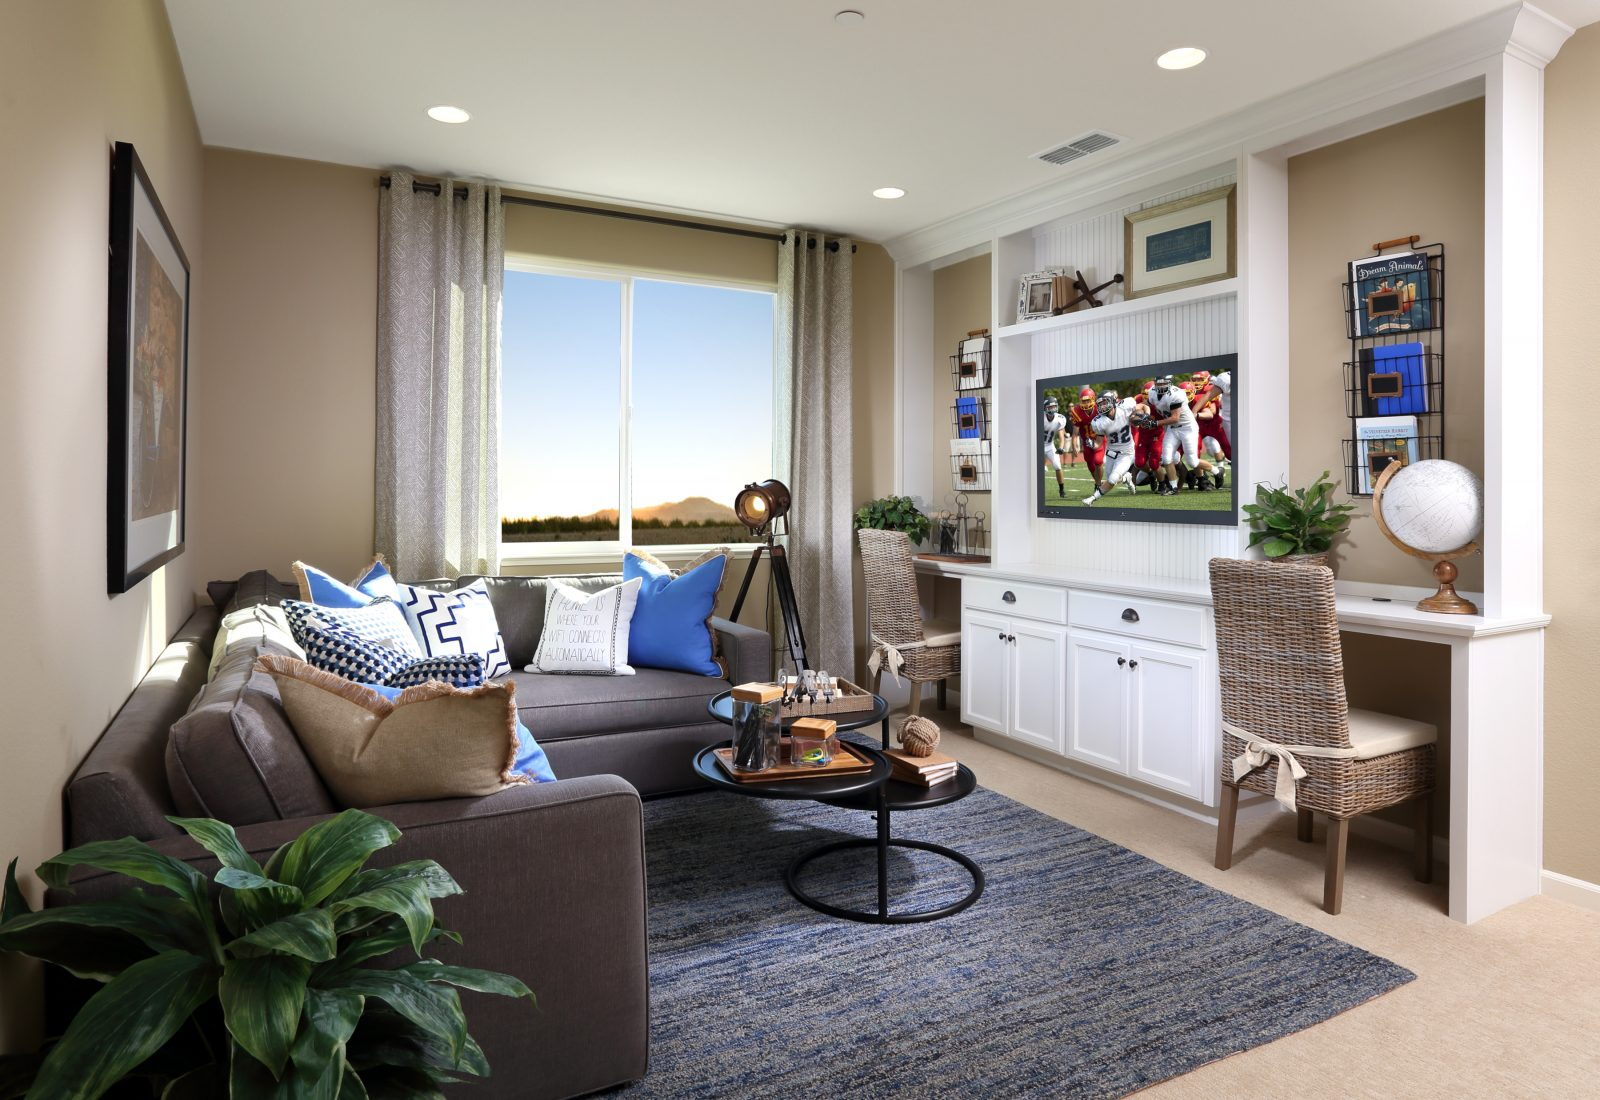 Living room in new luxury home | Merritt at Emerson Ranch in Oakley, CA | Brookfield Residential